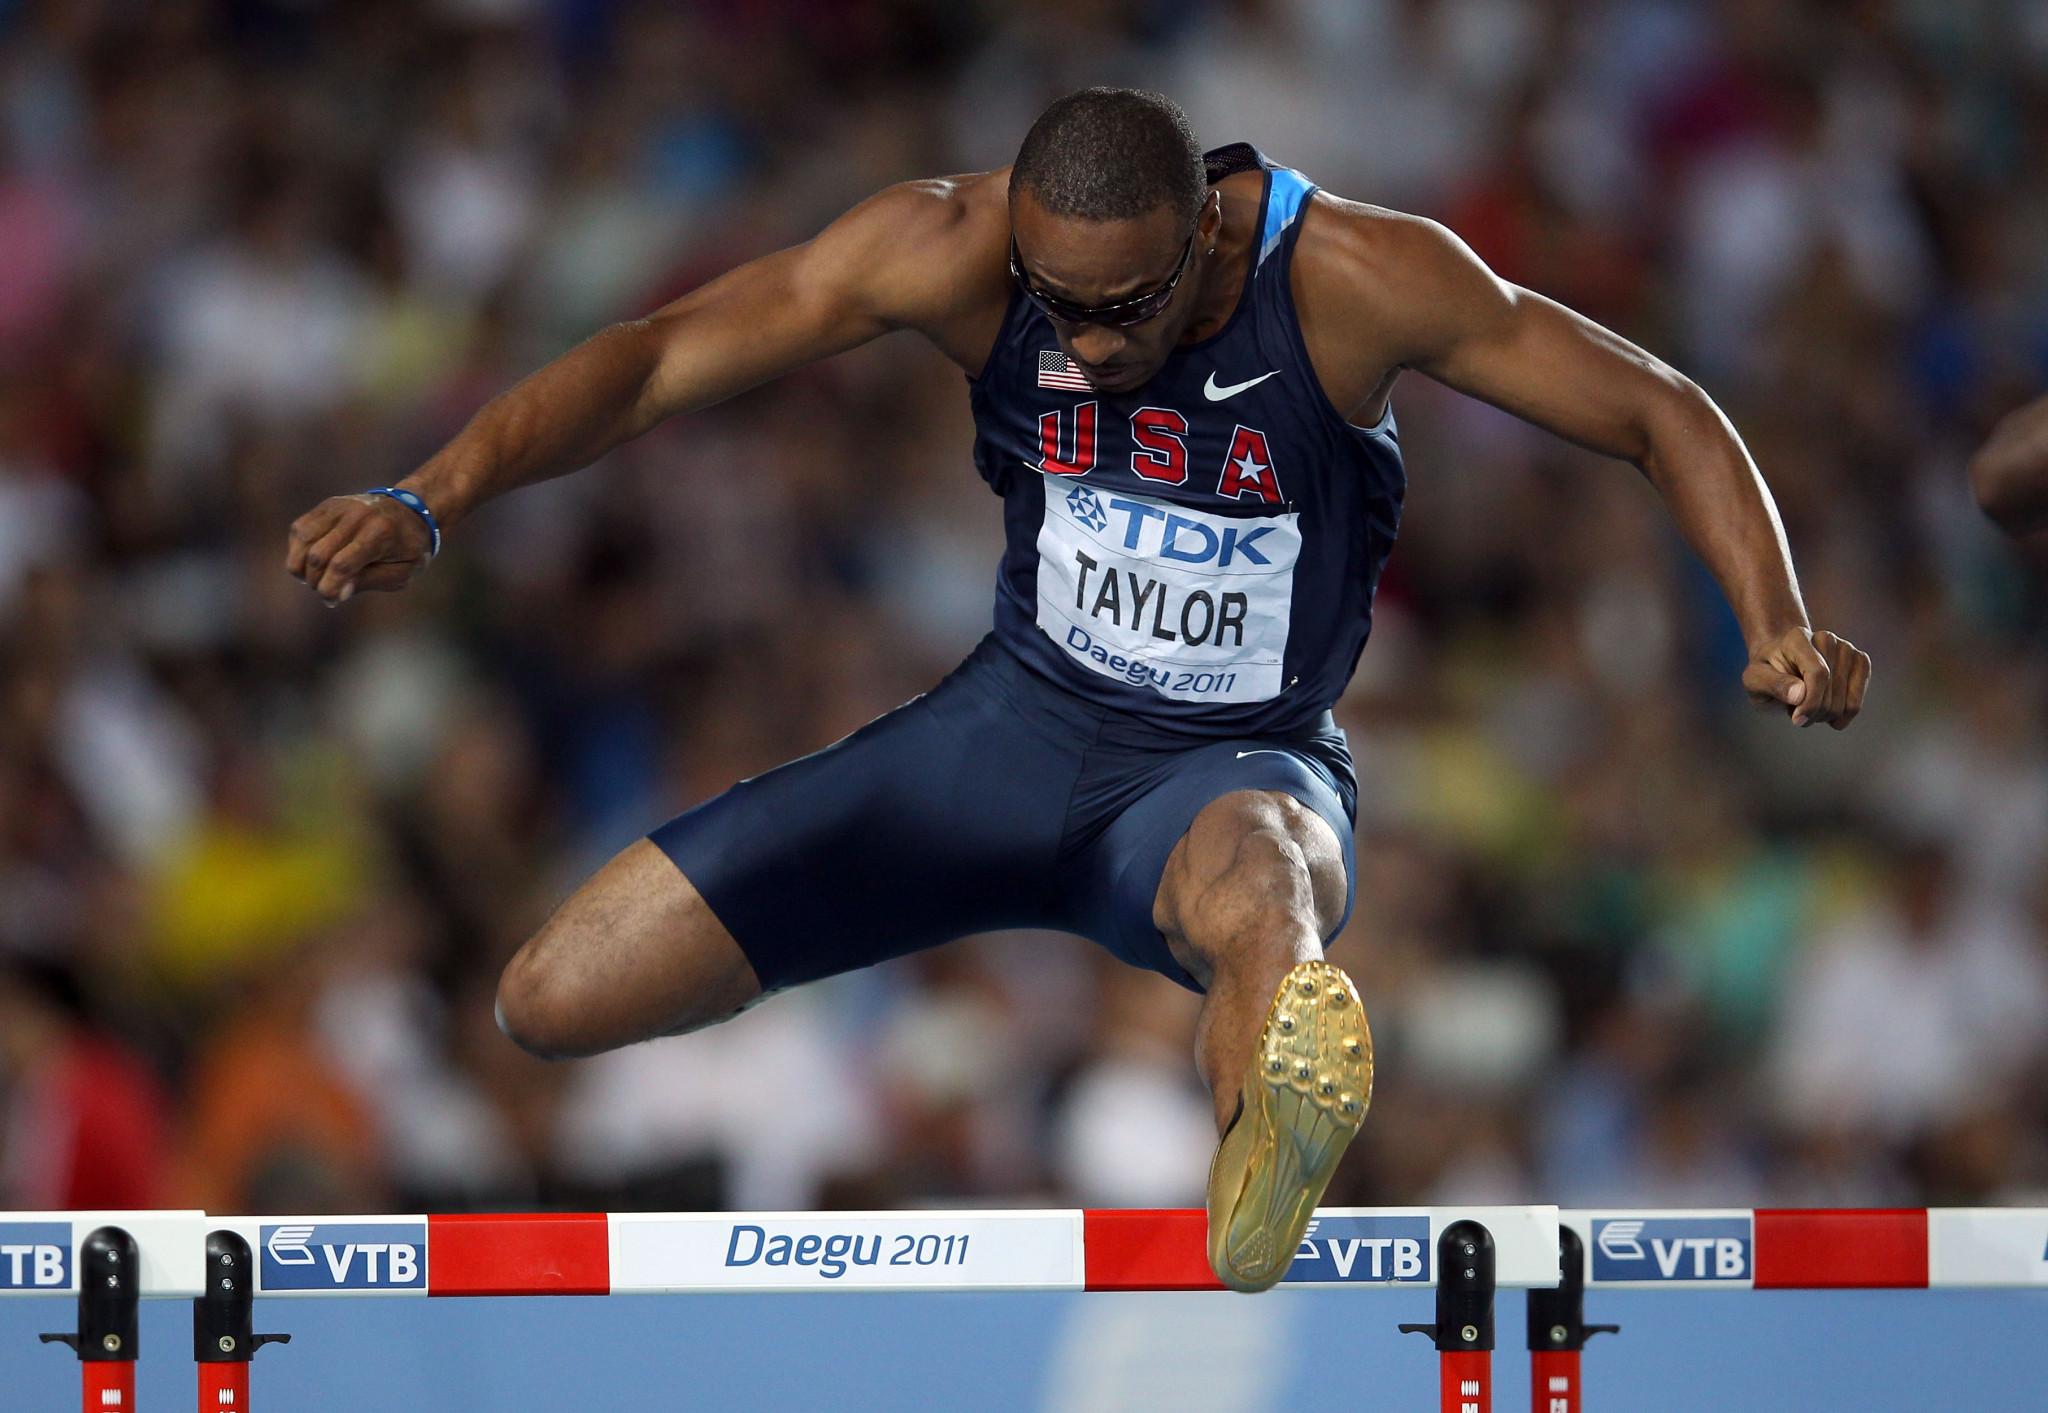 Double Olympic 400m hurdles champion Angelo Taylor has been provisionally suspended from coaching by USATF following the emergence of details of past sexual misconduct charges ©Getty Images